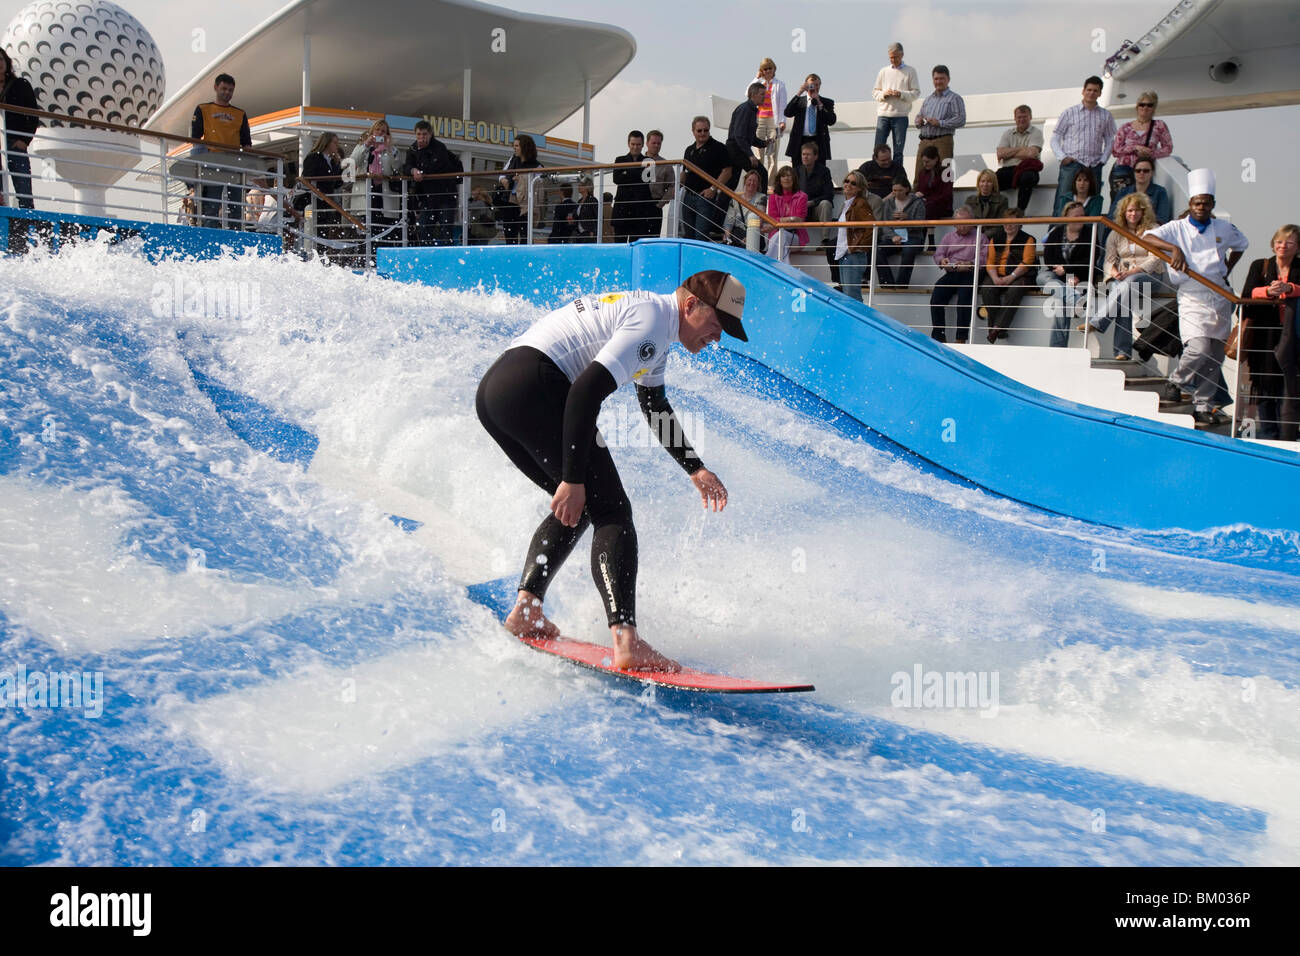 Surfer On FlowRider Waves Freedom Of The Seas Cruise Ship Royal - Pictures of freedom of the seas cruise ship